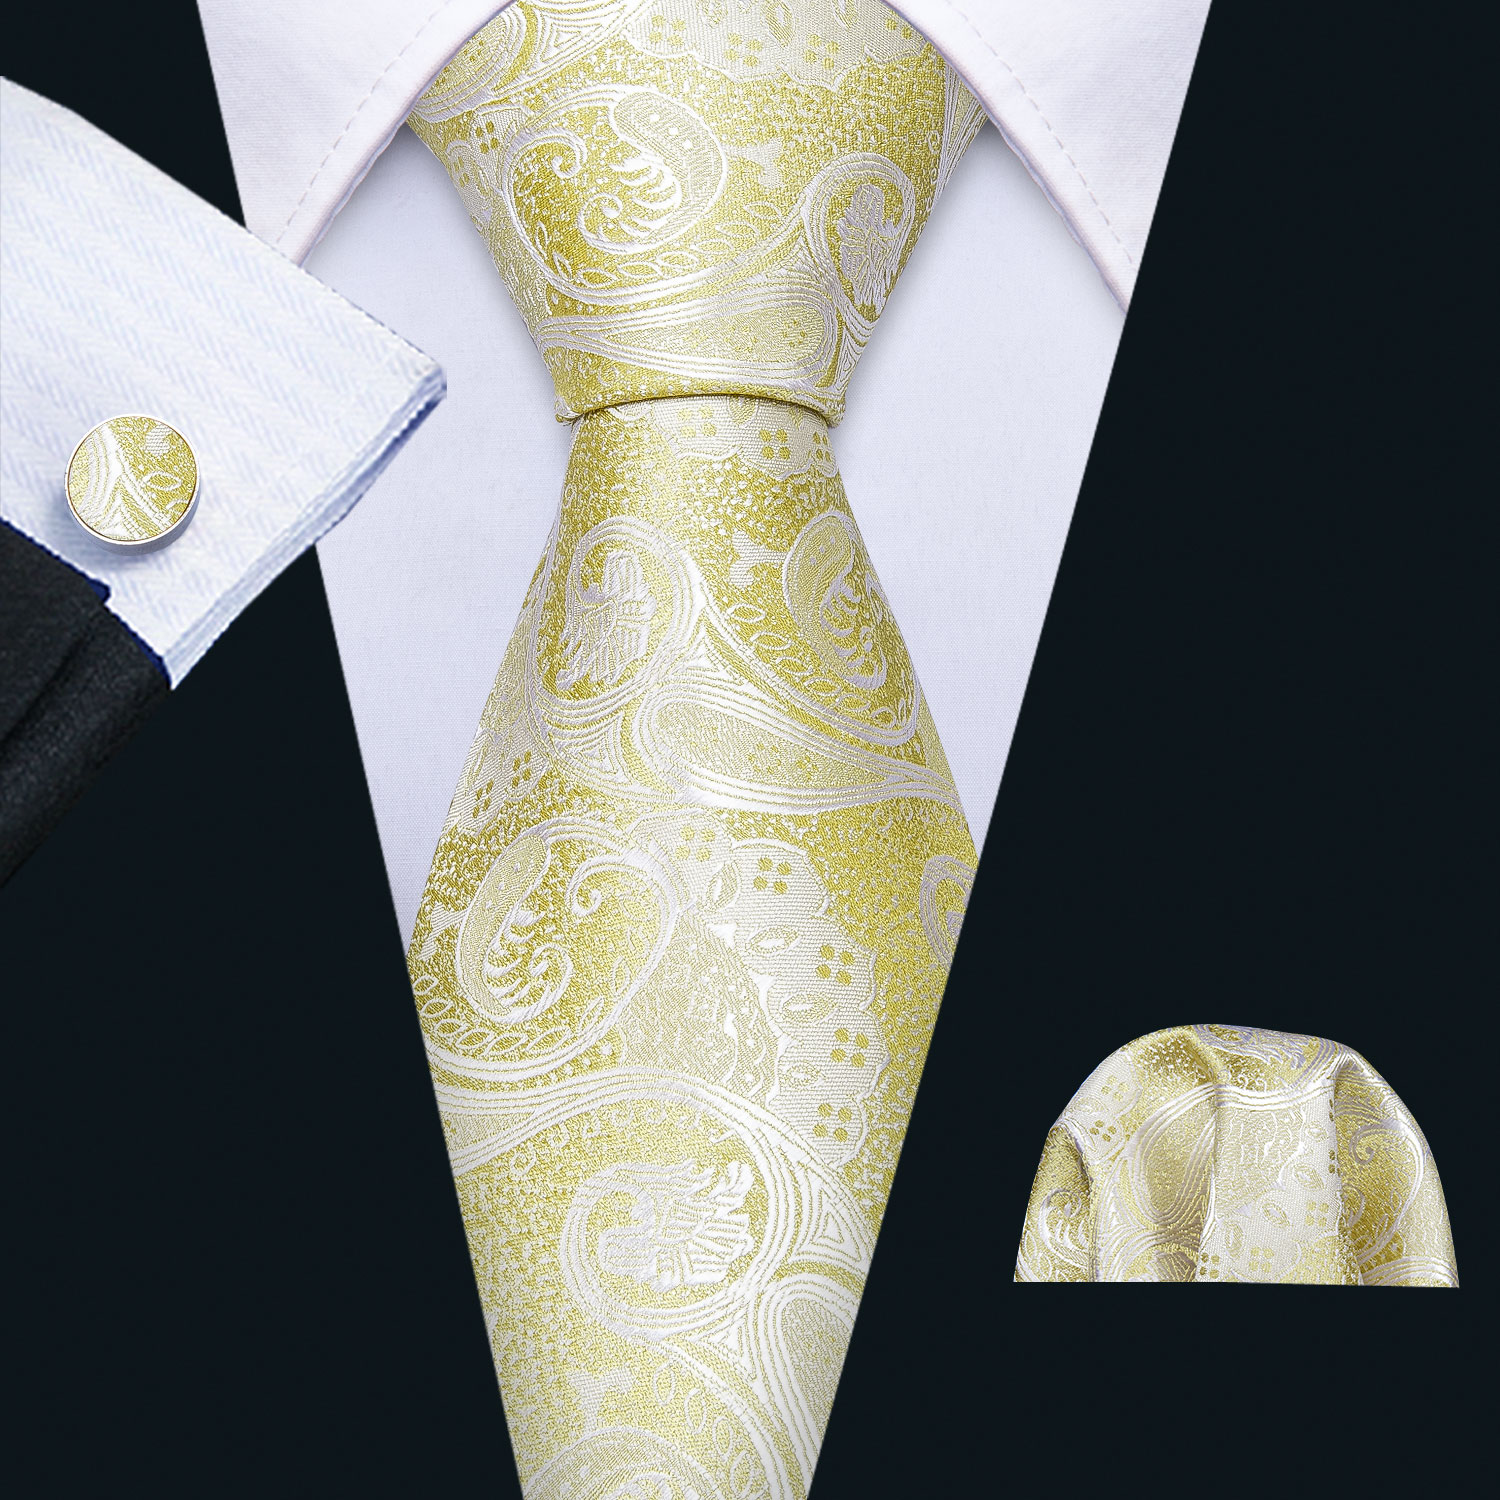 Mens Wedding Tie Yellow Foral Silk Tie Hanky Set Barry.Wang 8.5cm Fashion Designer Neck Ties For Men Party Dropshipping FA-5145